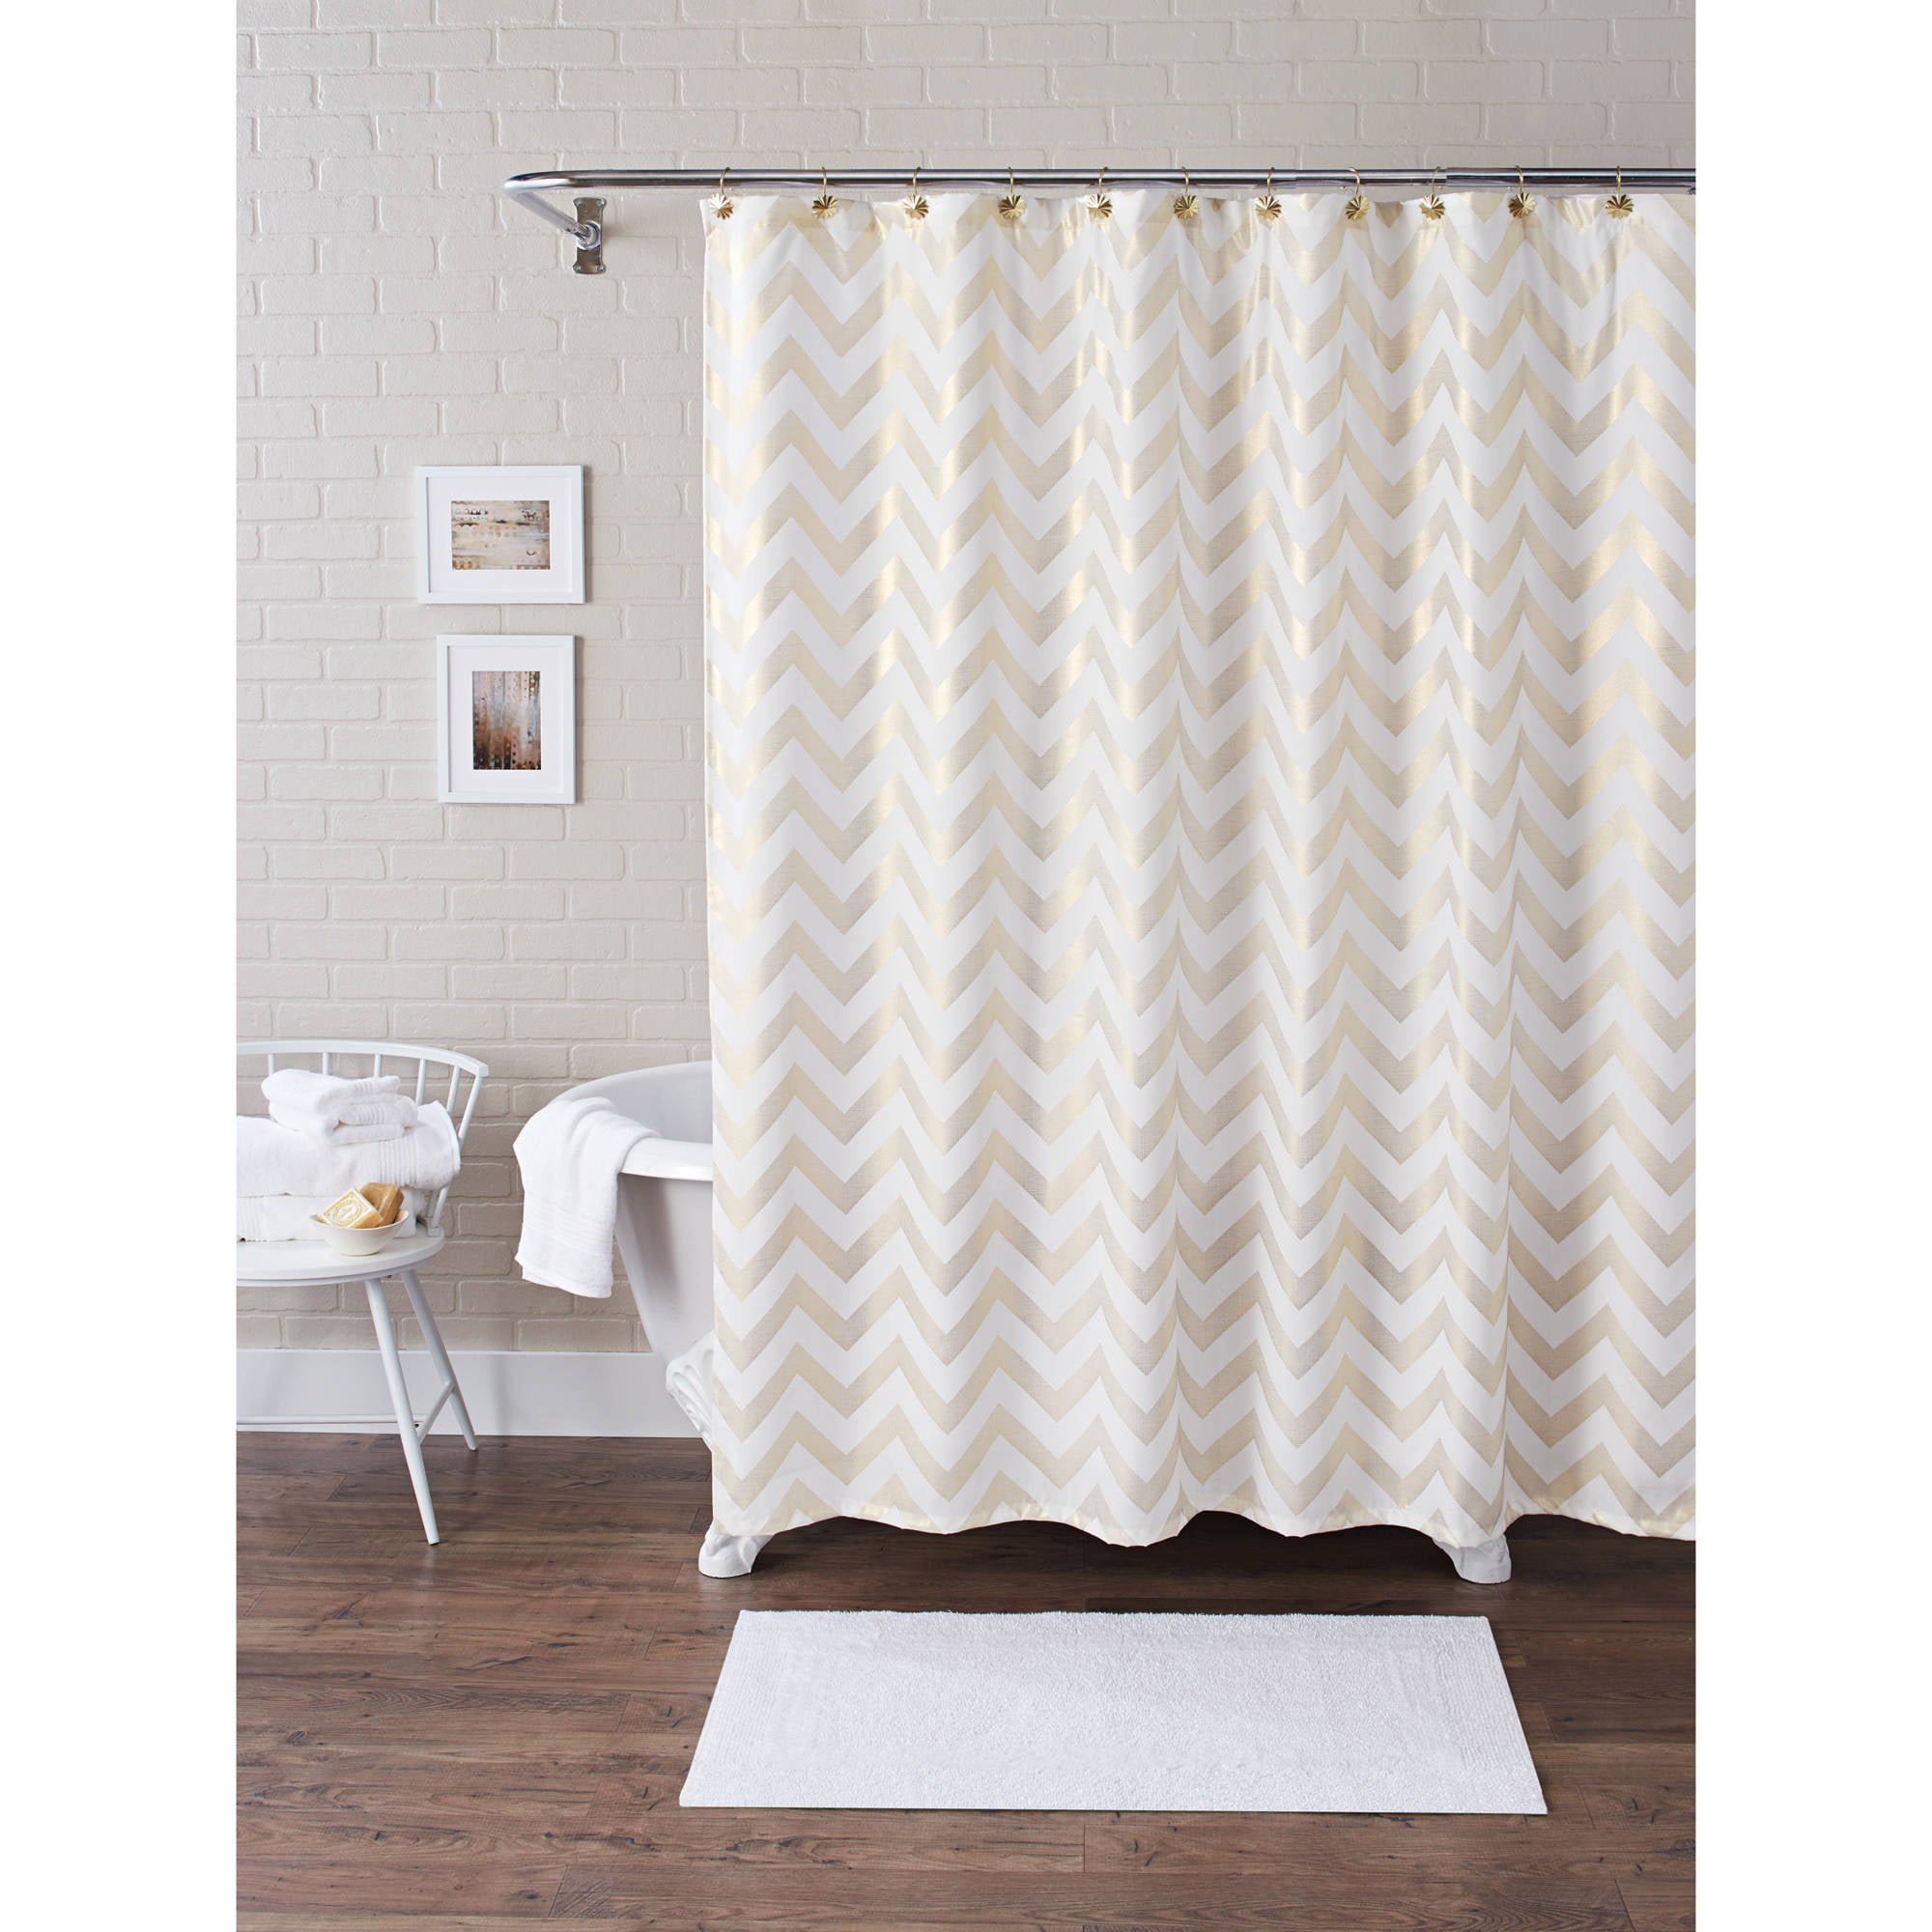 Better Homes and Gardens Metallic Chevron Fabric 13-Piece Shower Curtain Set by Maytex Mills